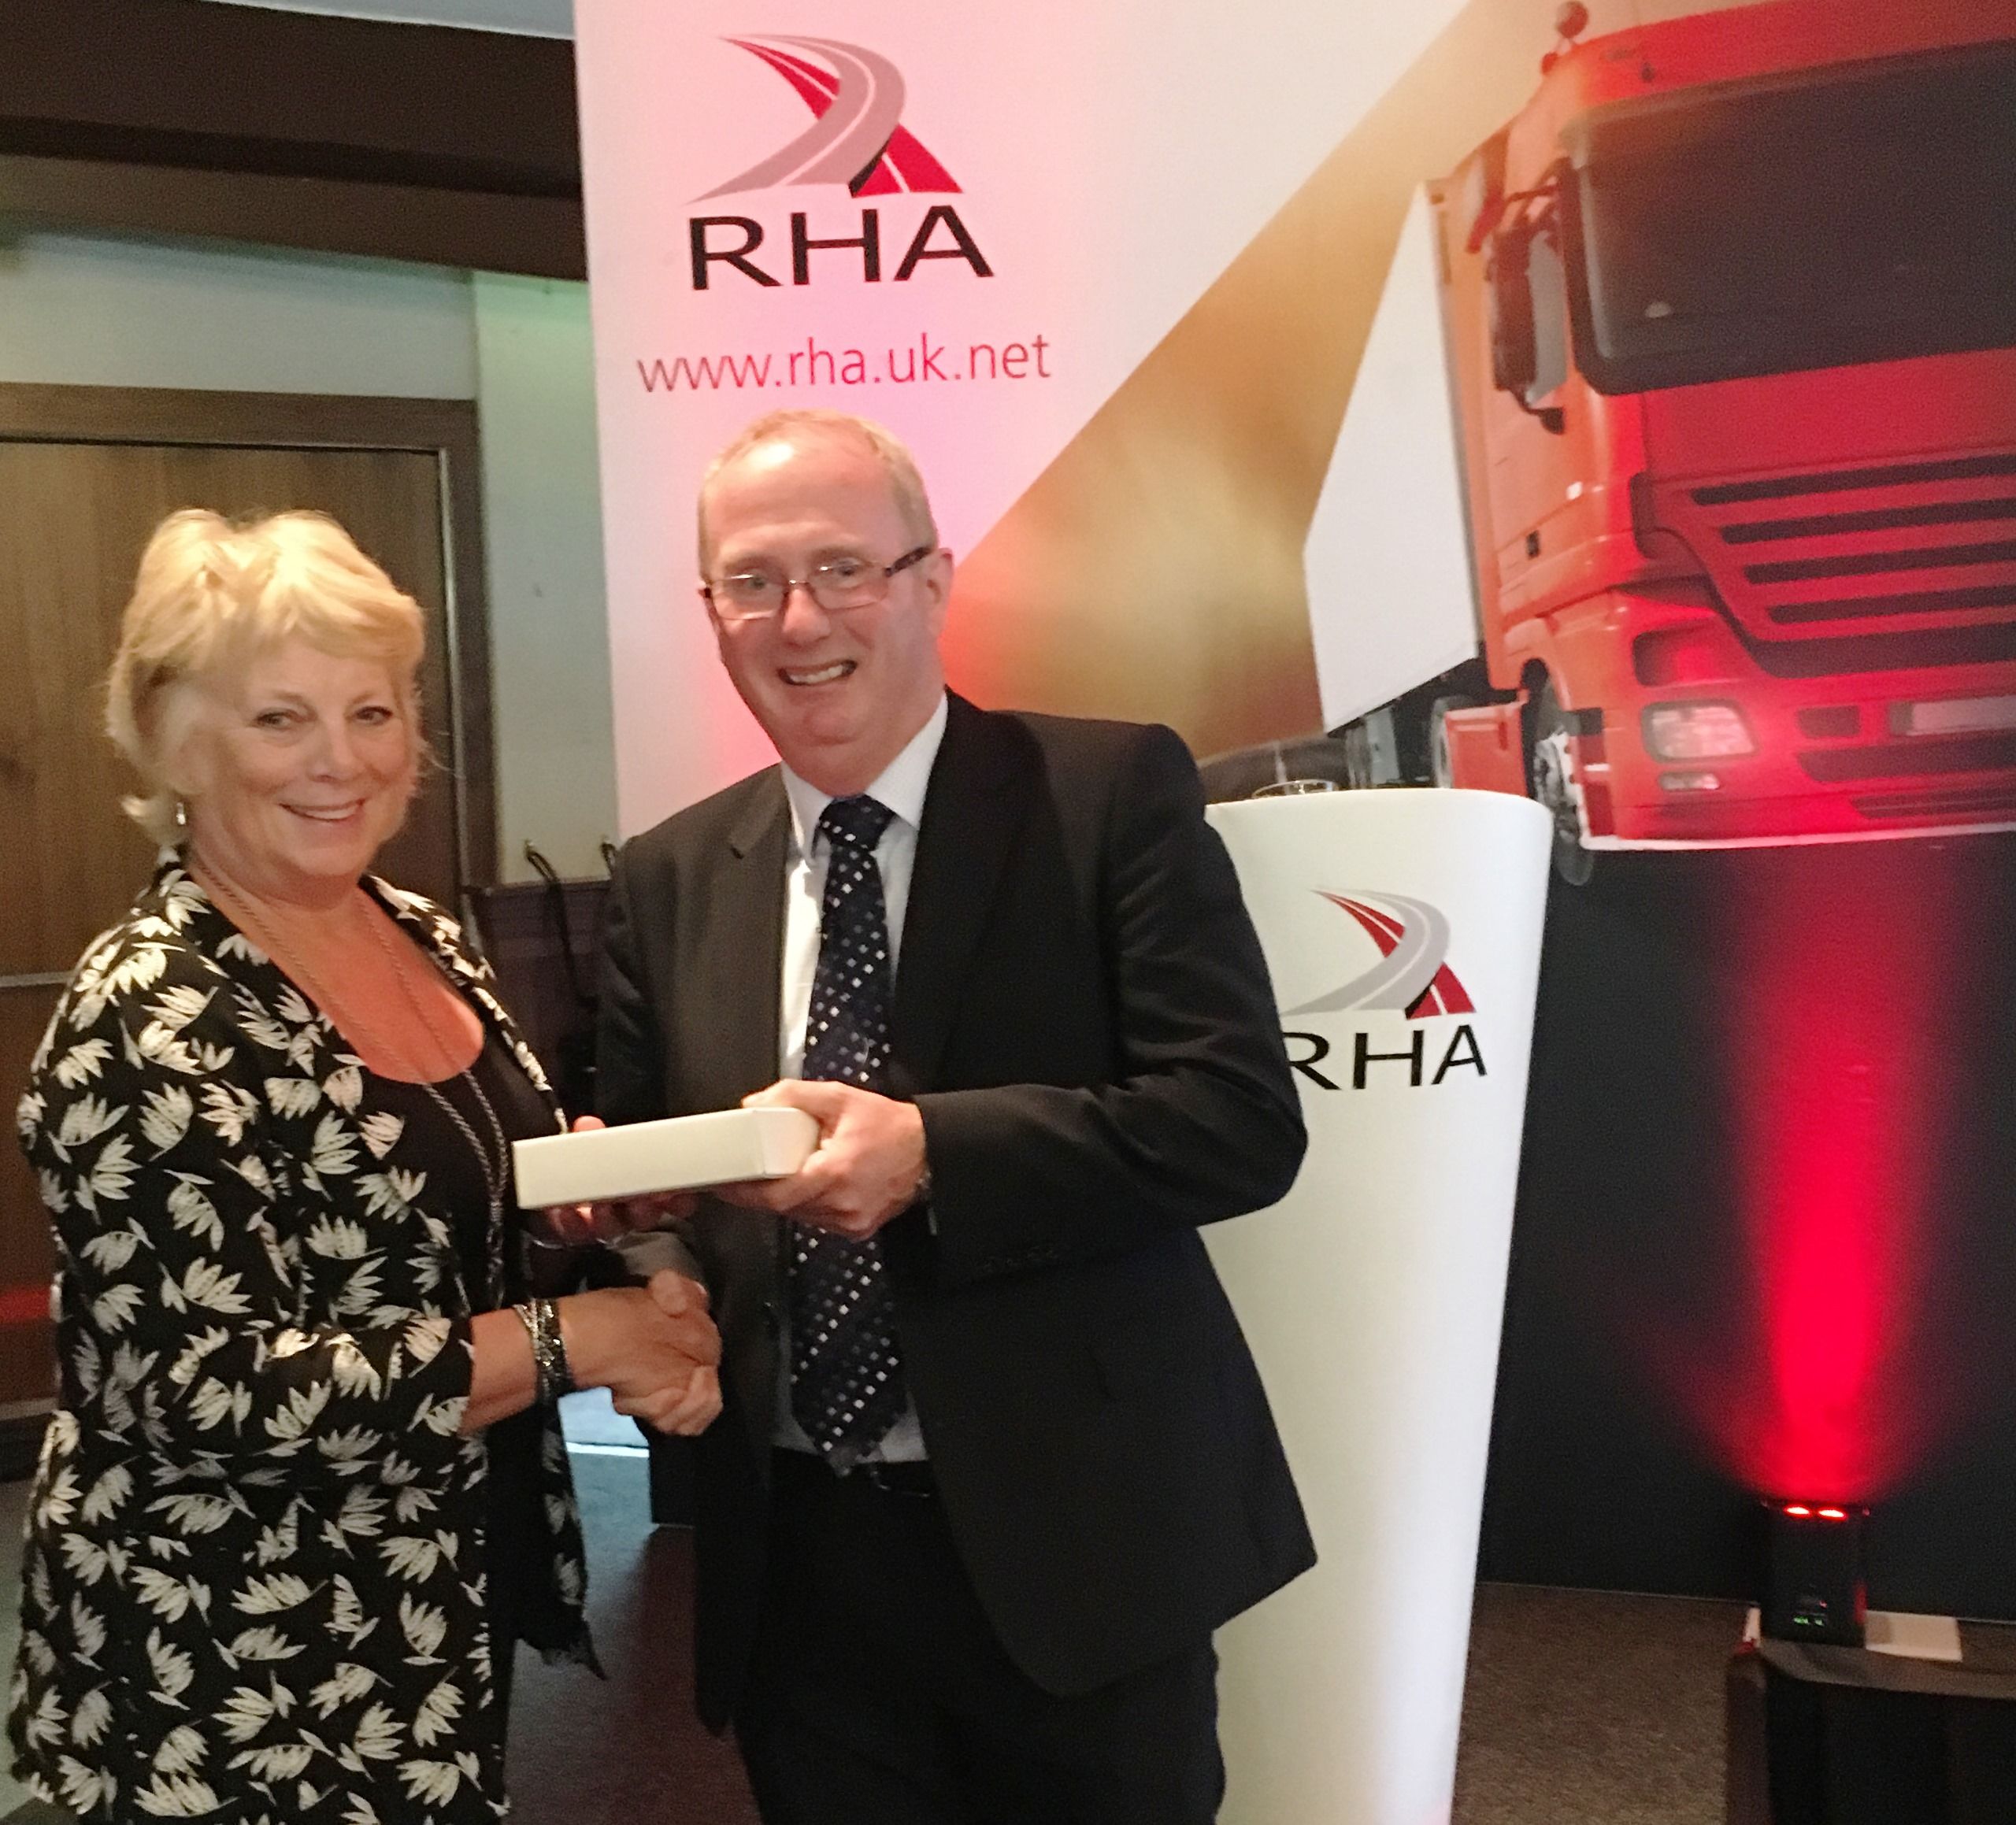 The winner was Catriona MacLennan of MacLennan Motors Limited and it was presented by Iain Mitchell, RHA Scotland & Northern Ireland Chairman.